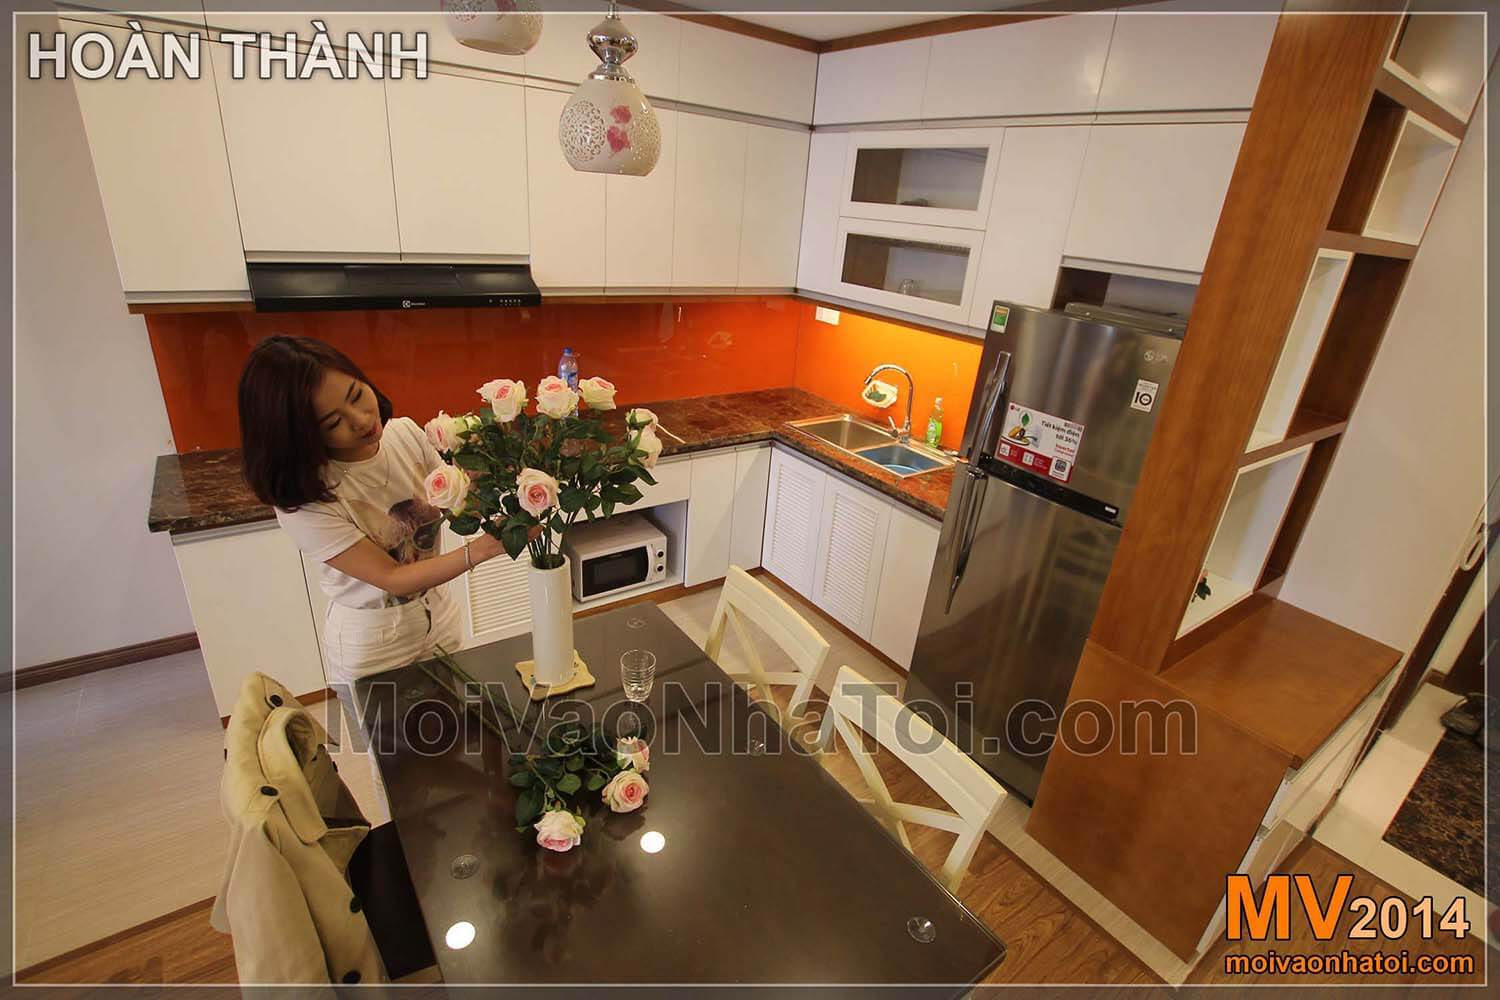 compact kitchen with construction of starcity apartment. star city apartment construction